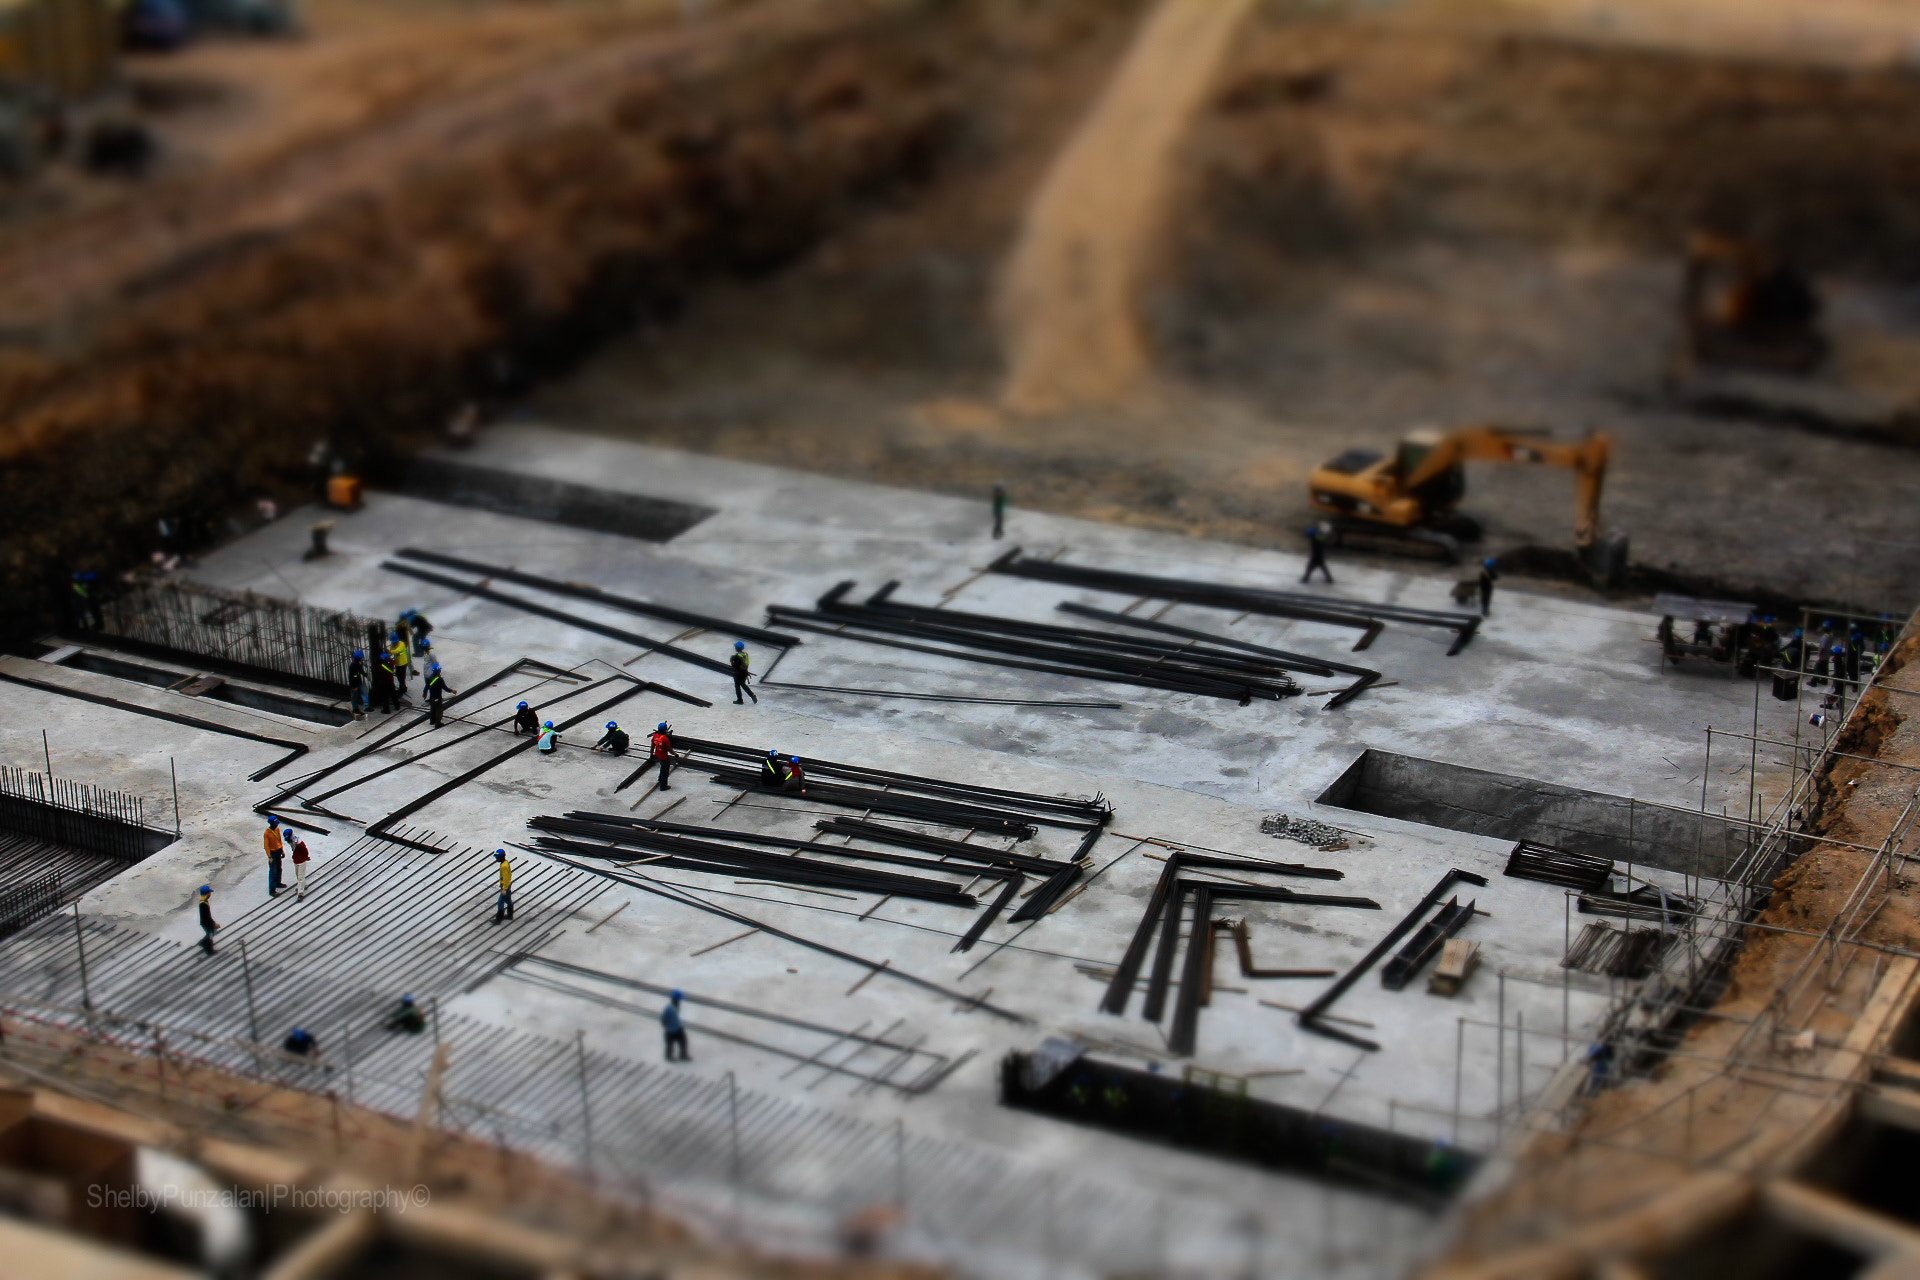 Photograph Under Construction by Shelby Punzalan on 500px